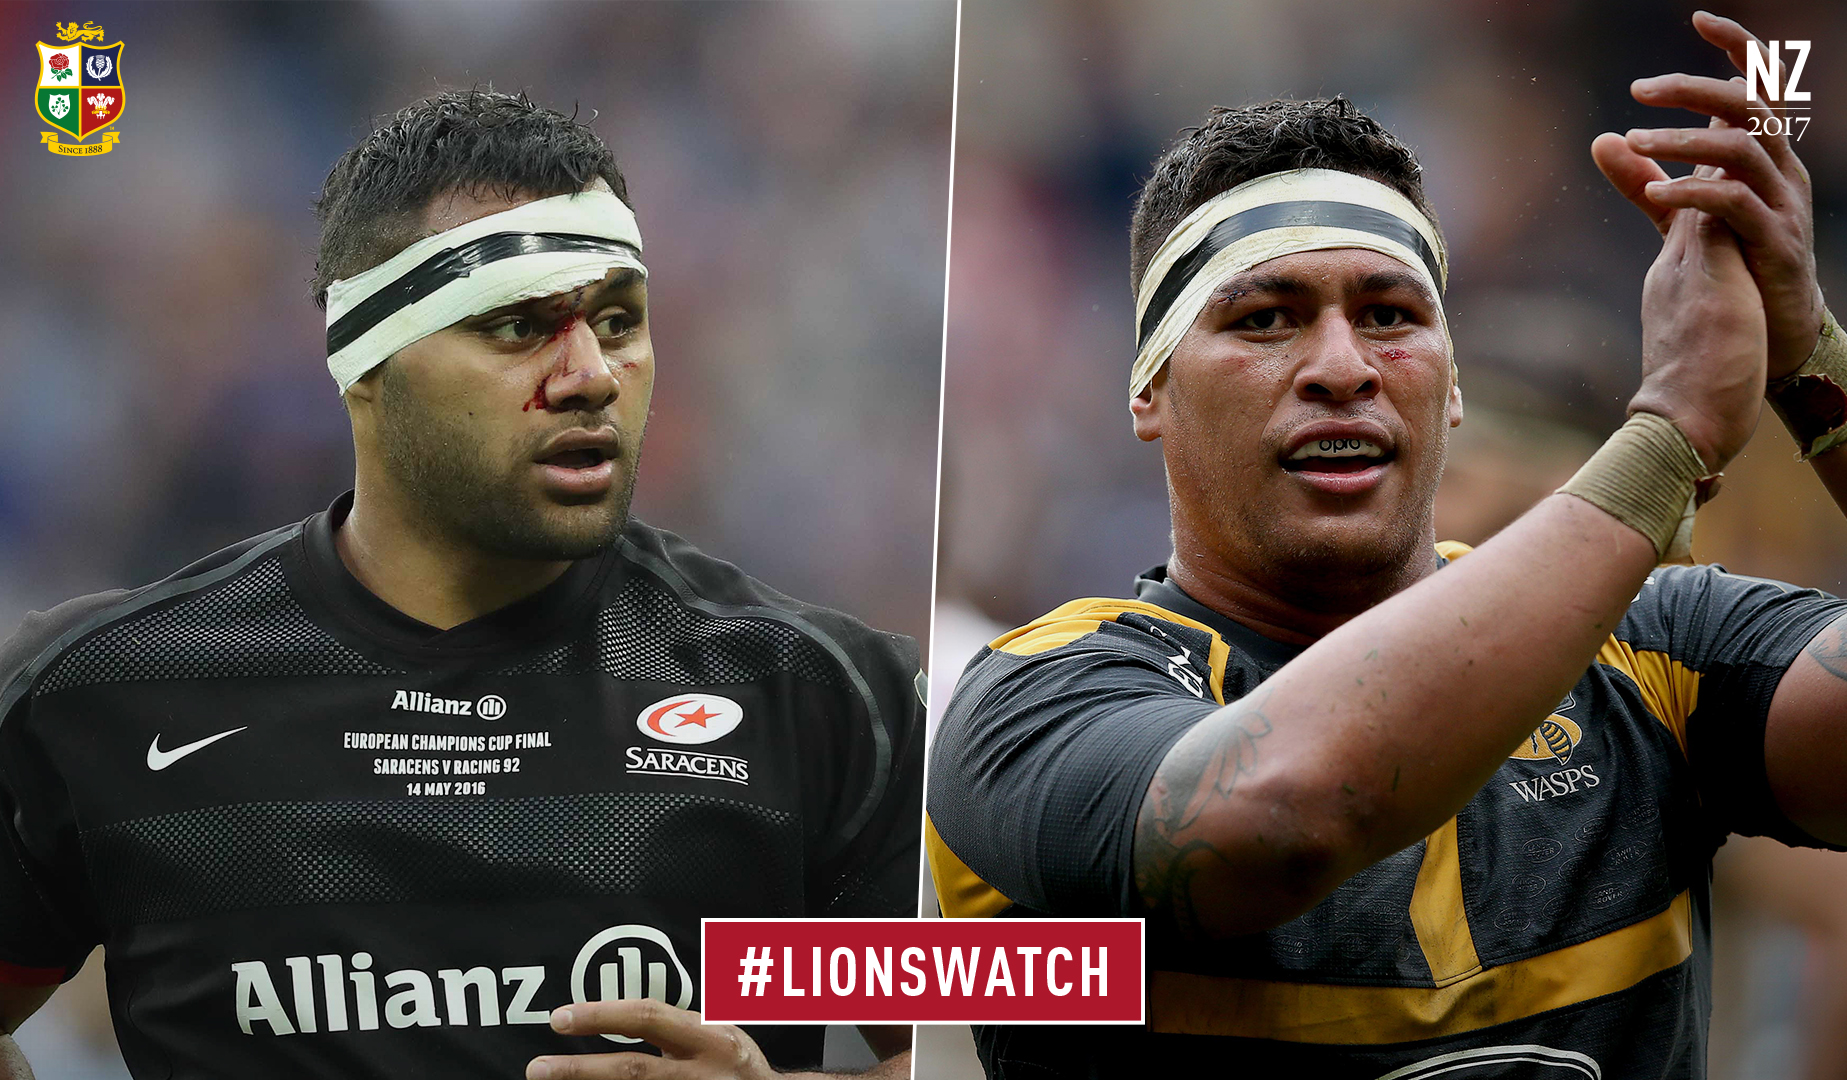 LionsWatch: Top two collide in the Aviva Premiership